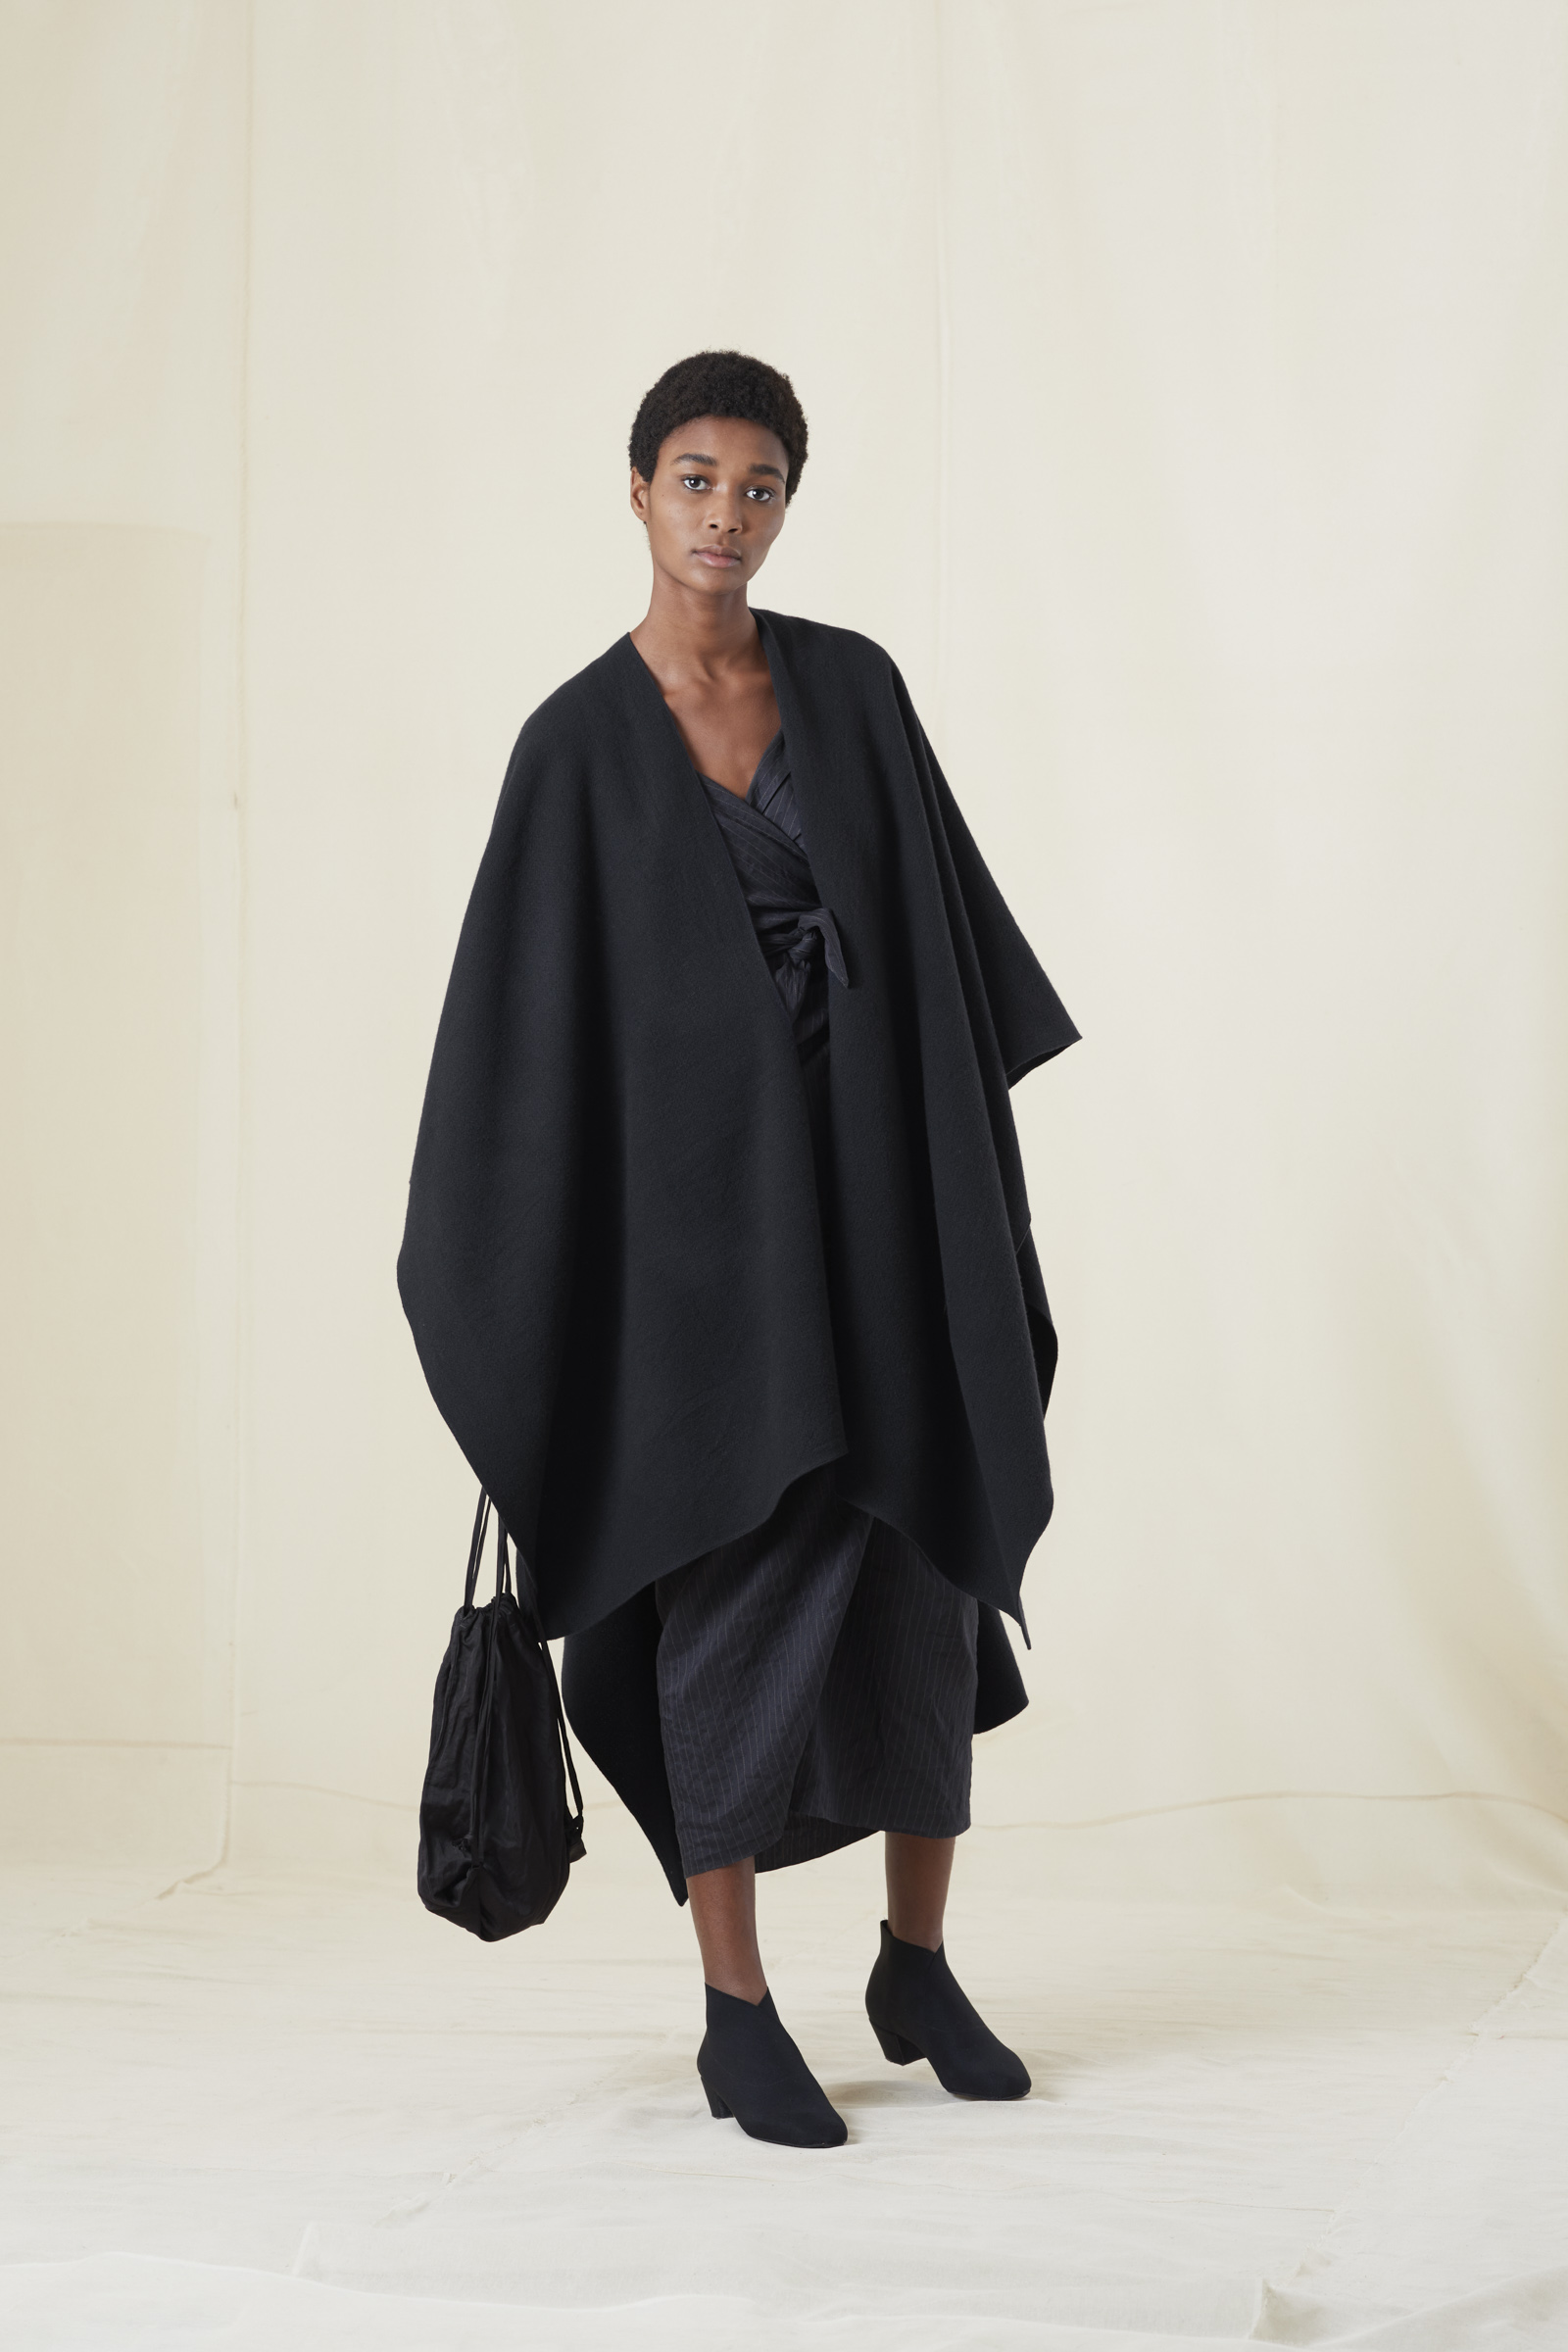 PONCHO, BLUE VIRGIN WOOL COAT - Cortana